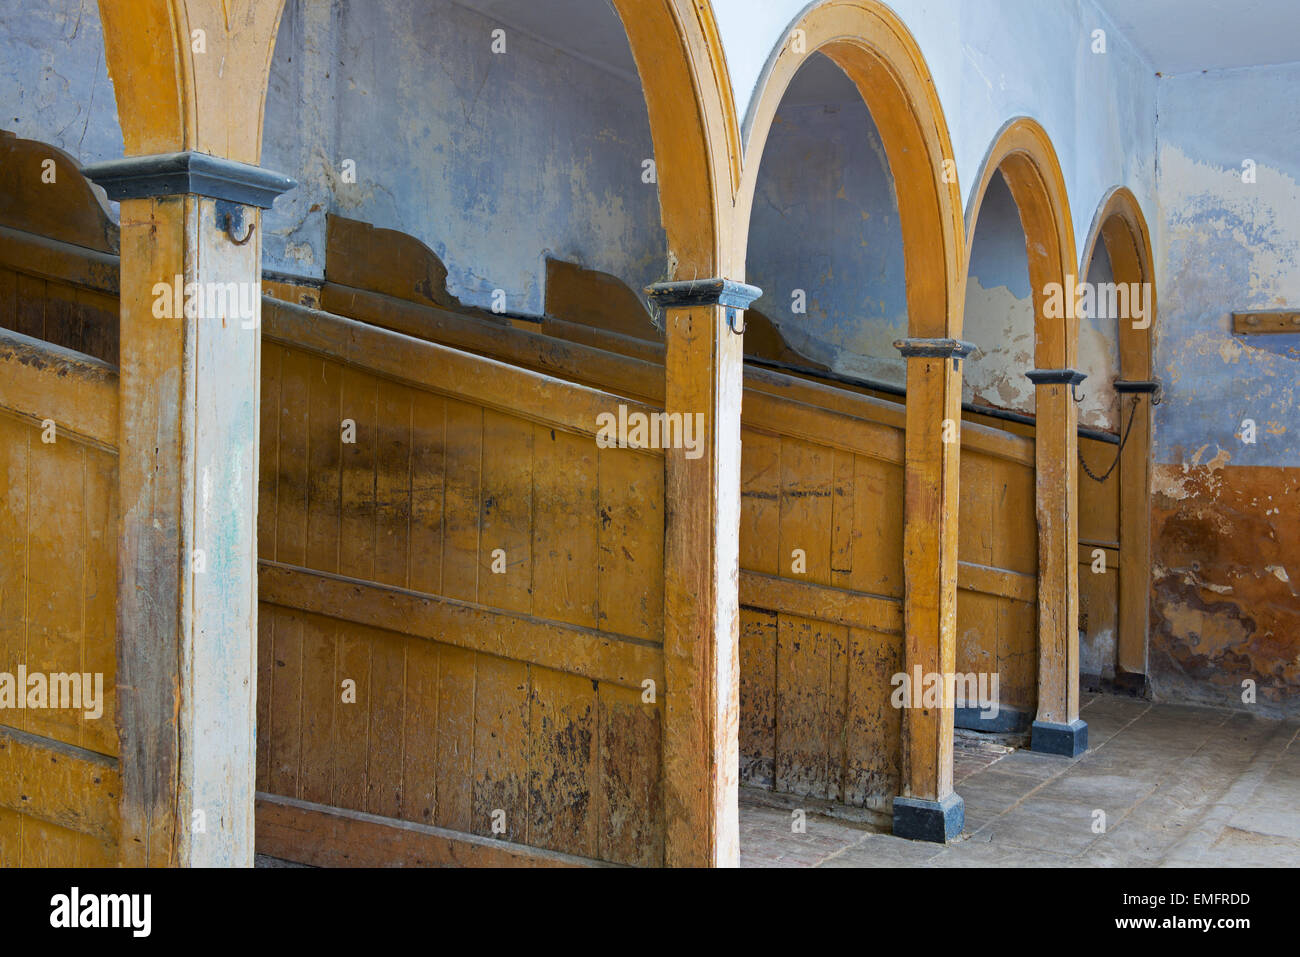 The stables at Calke Abbey, Derbyshire, England UK - Stock Image